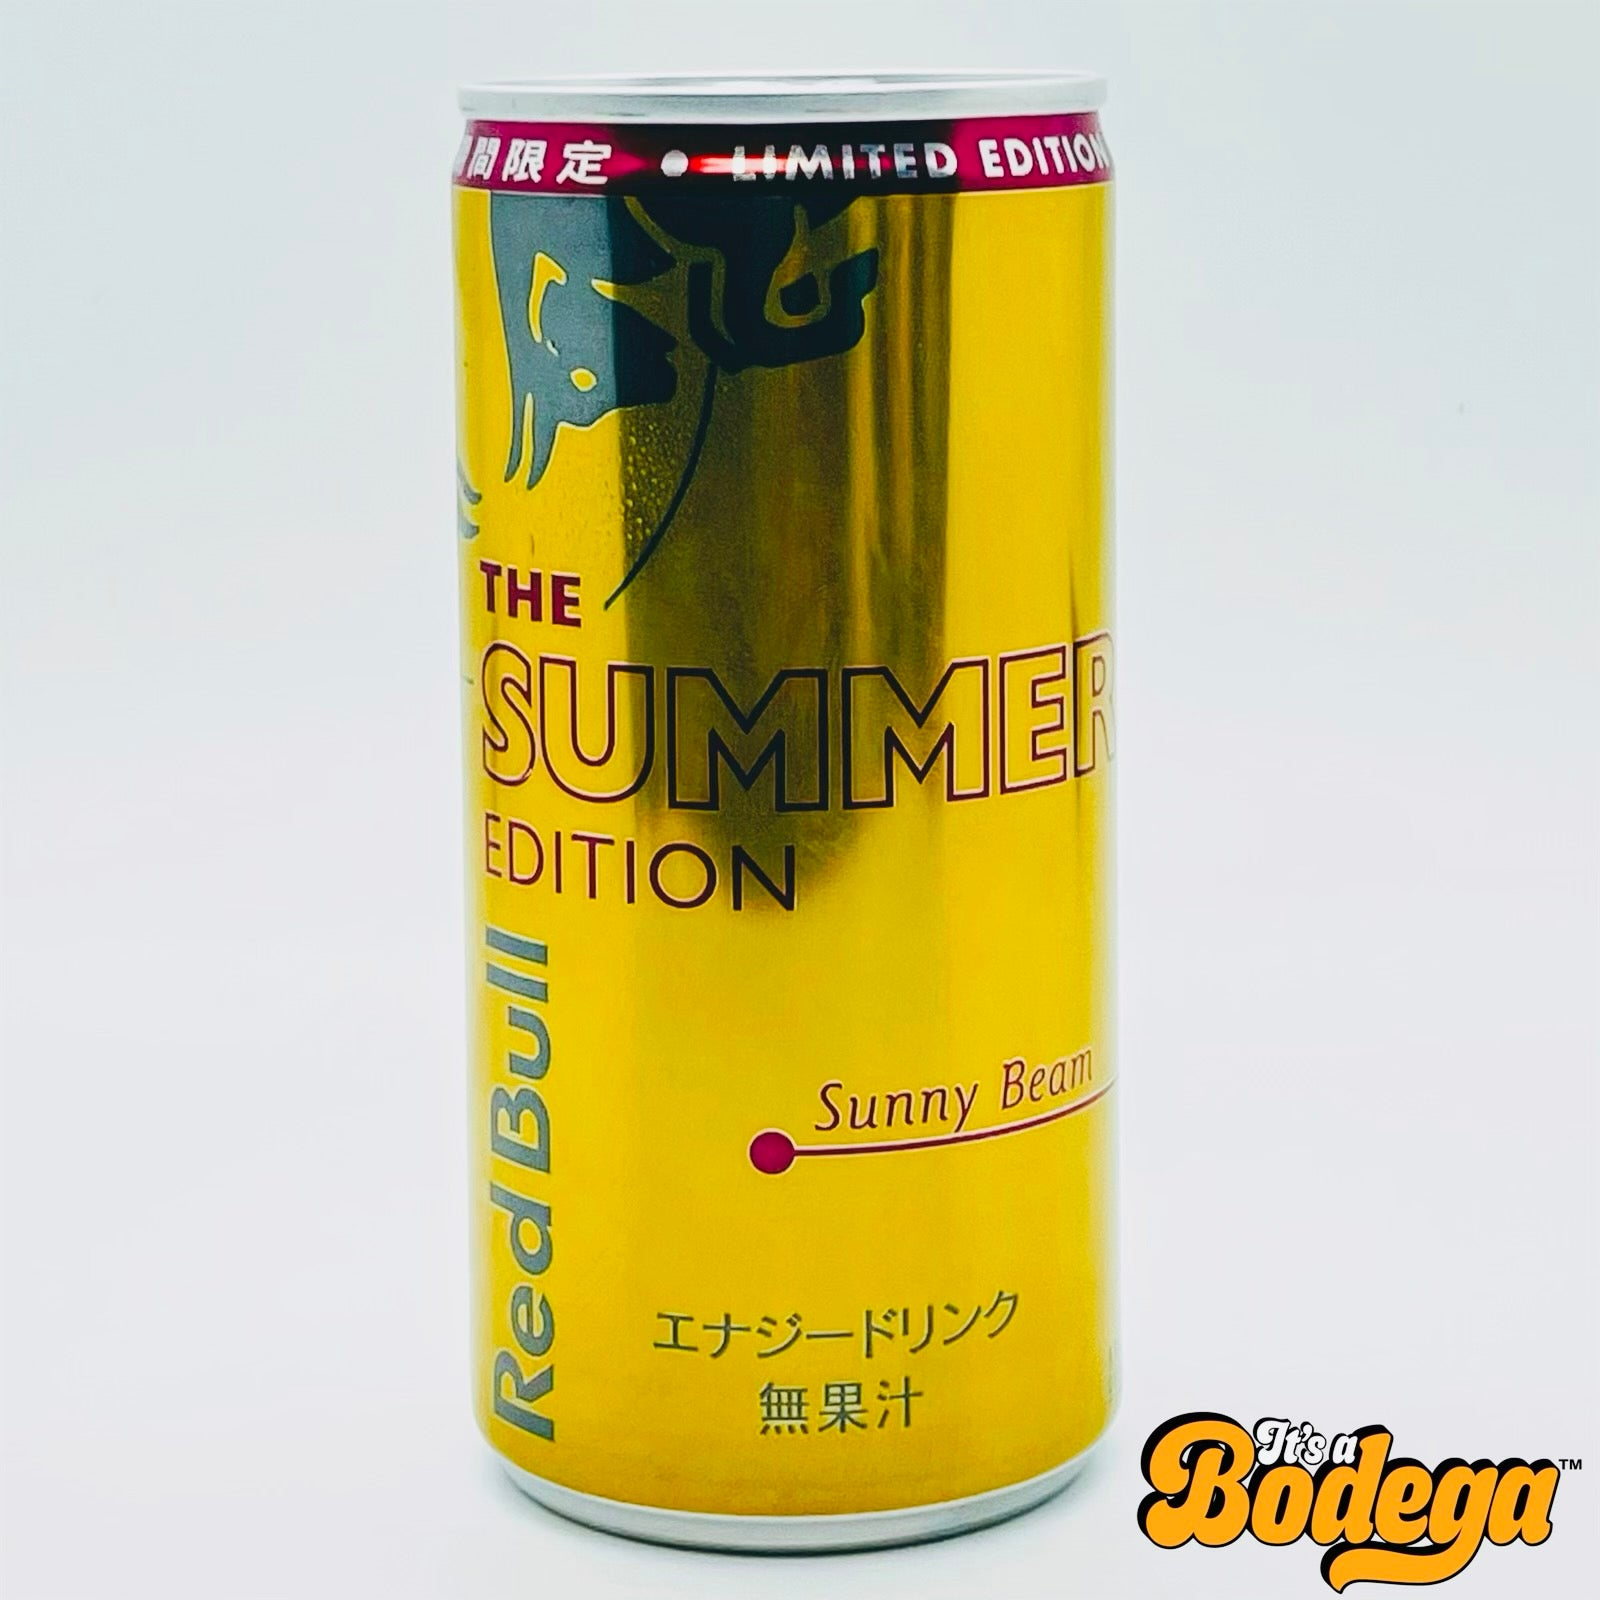 Red Bull The Summer Edition Sunny Beam (Japan)